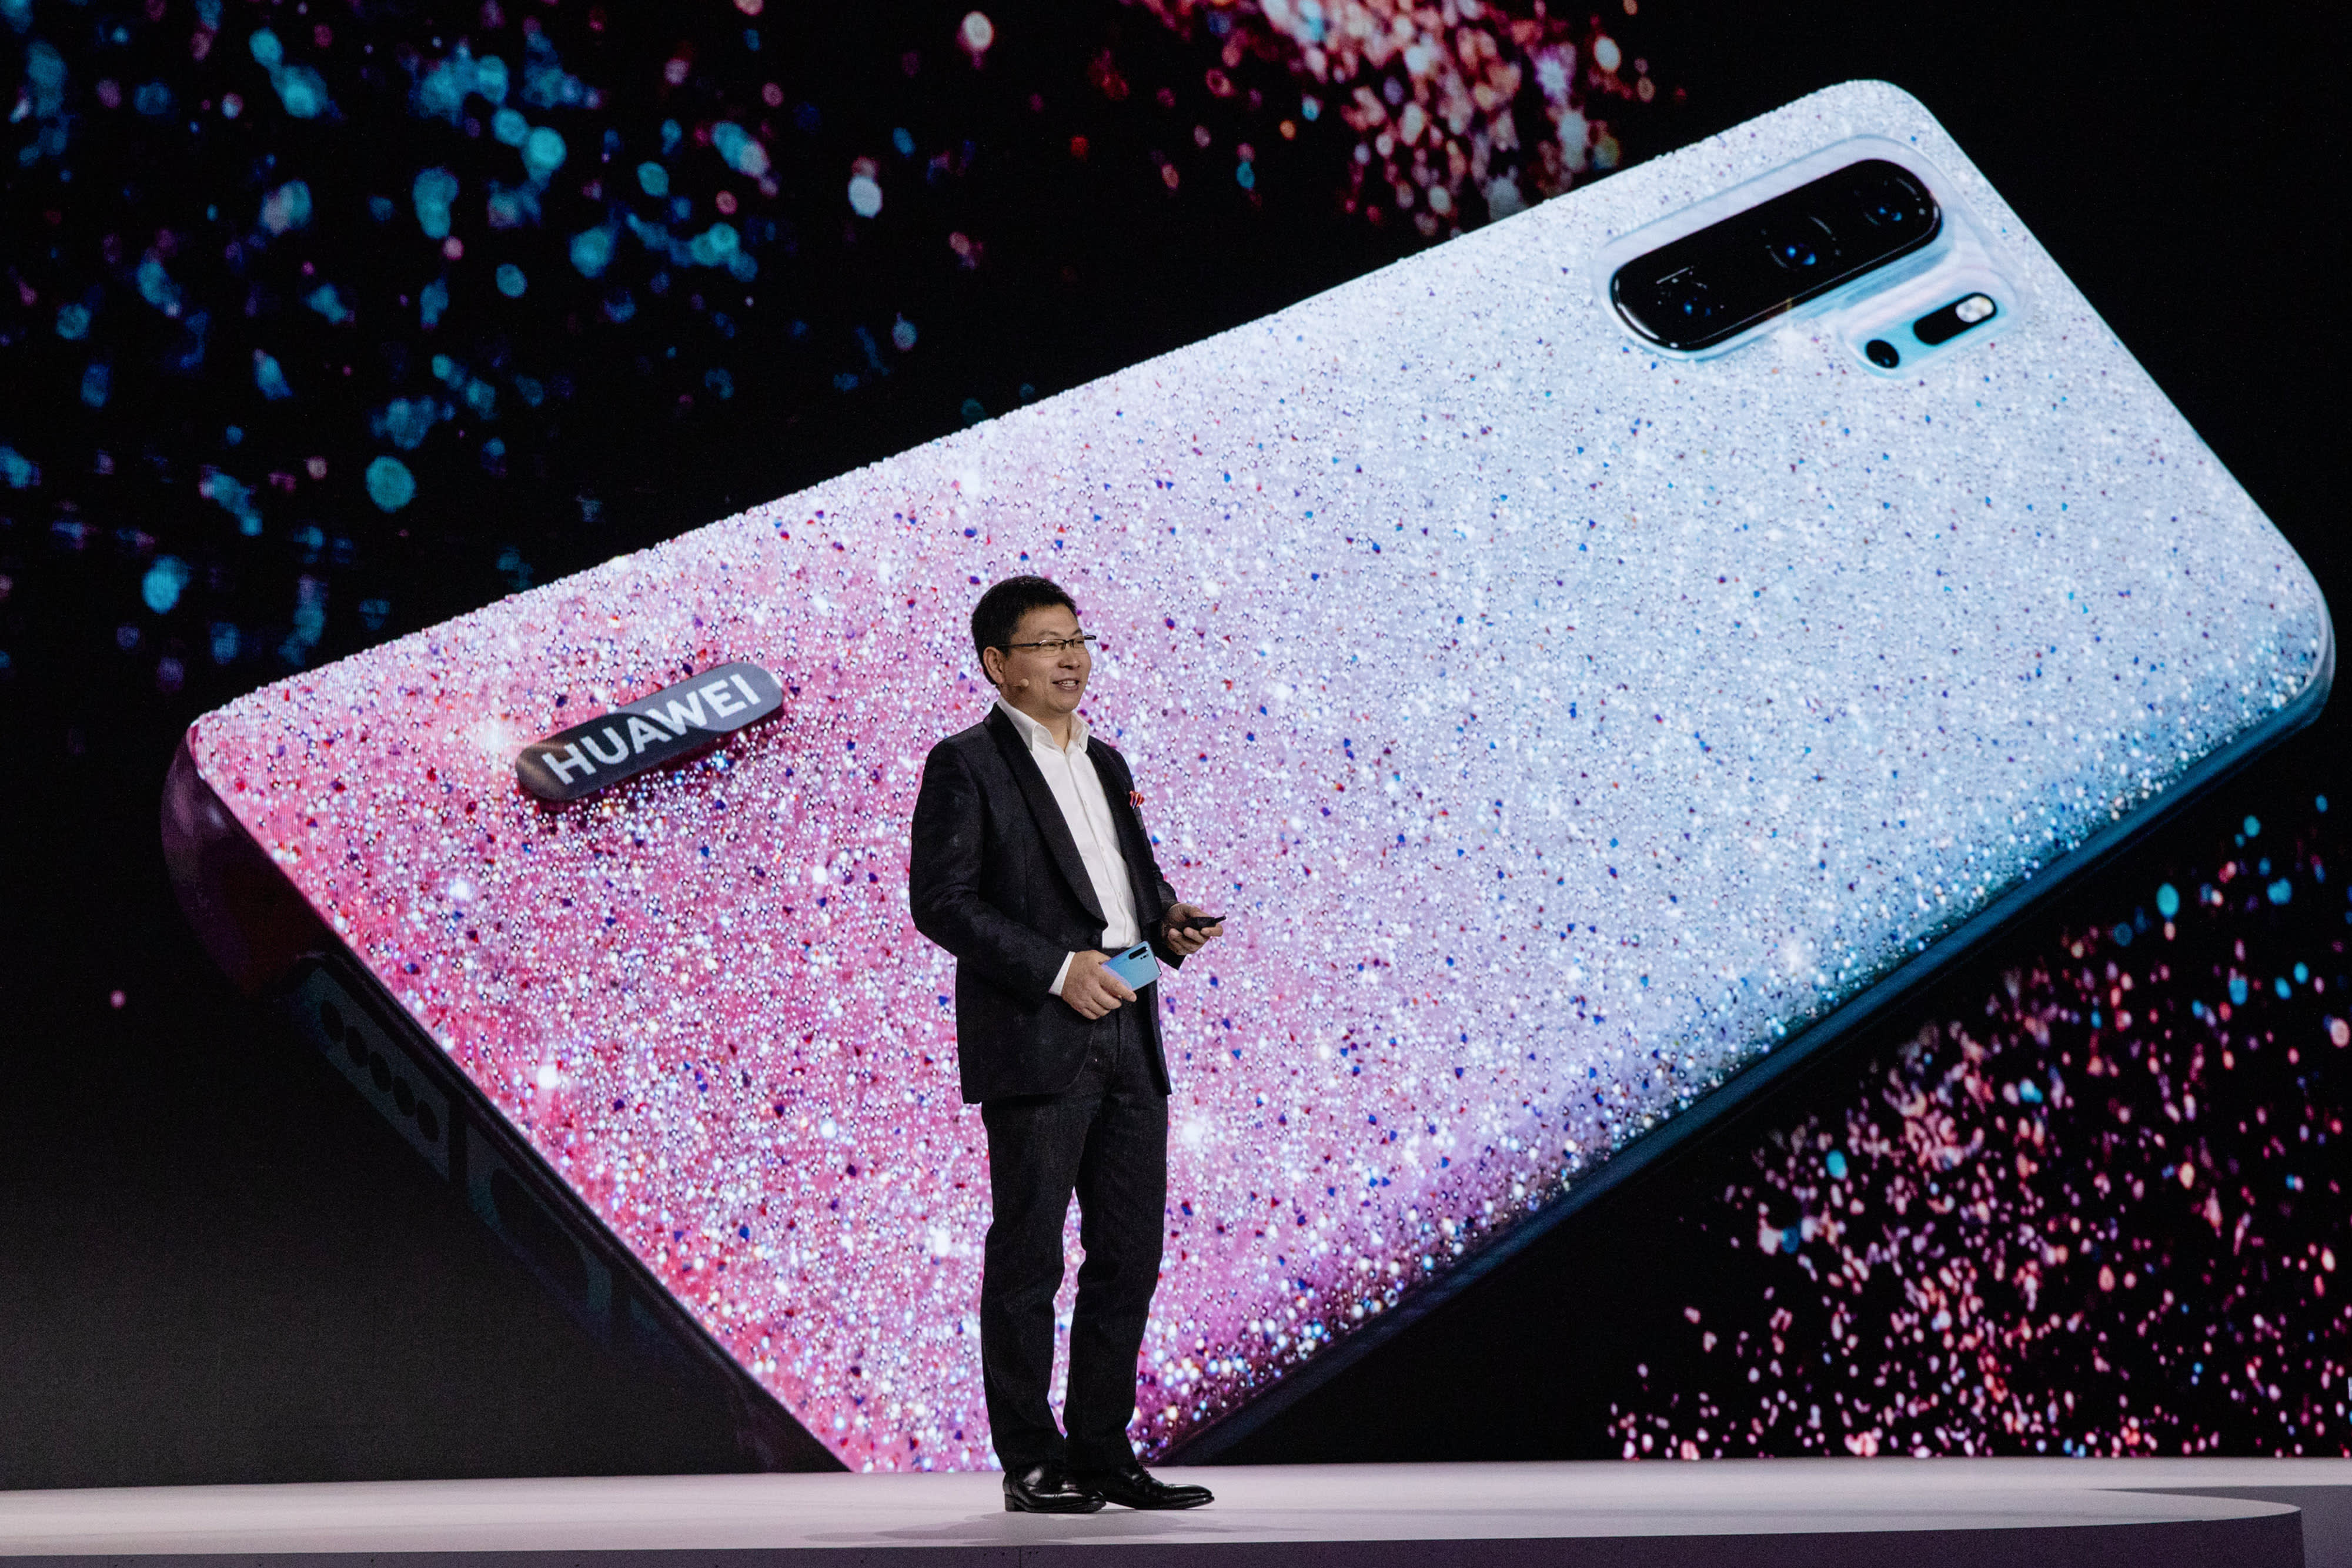 Richard Yu, chief executive officer of Huawei Technologies Co., presents the P30 series smartphone during a Huawei Technologies Co. launch event in Paris, France, on Tuesday, March 26, 2019.